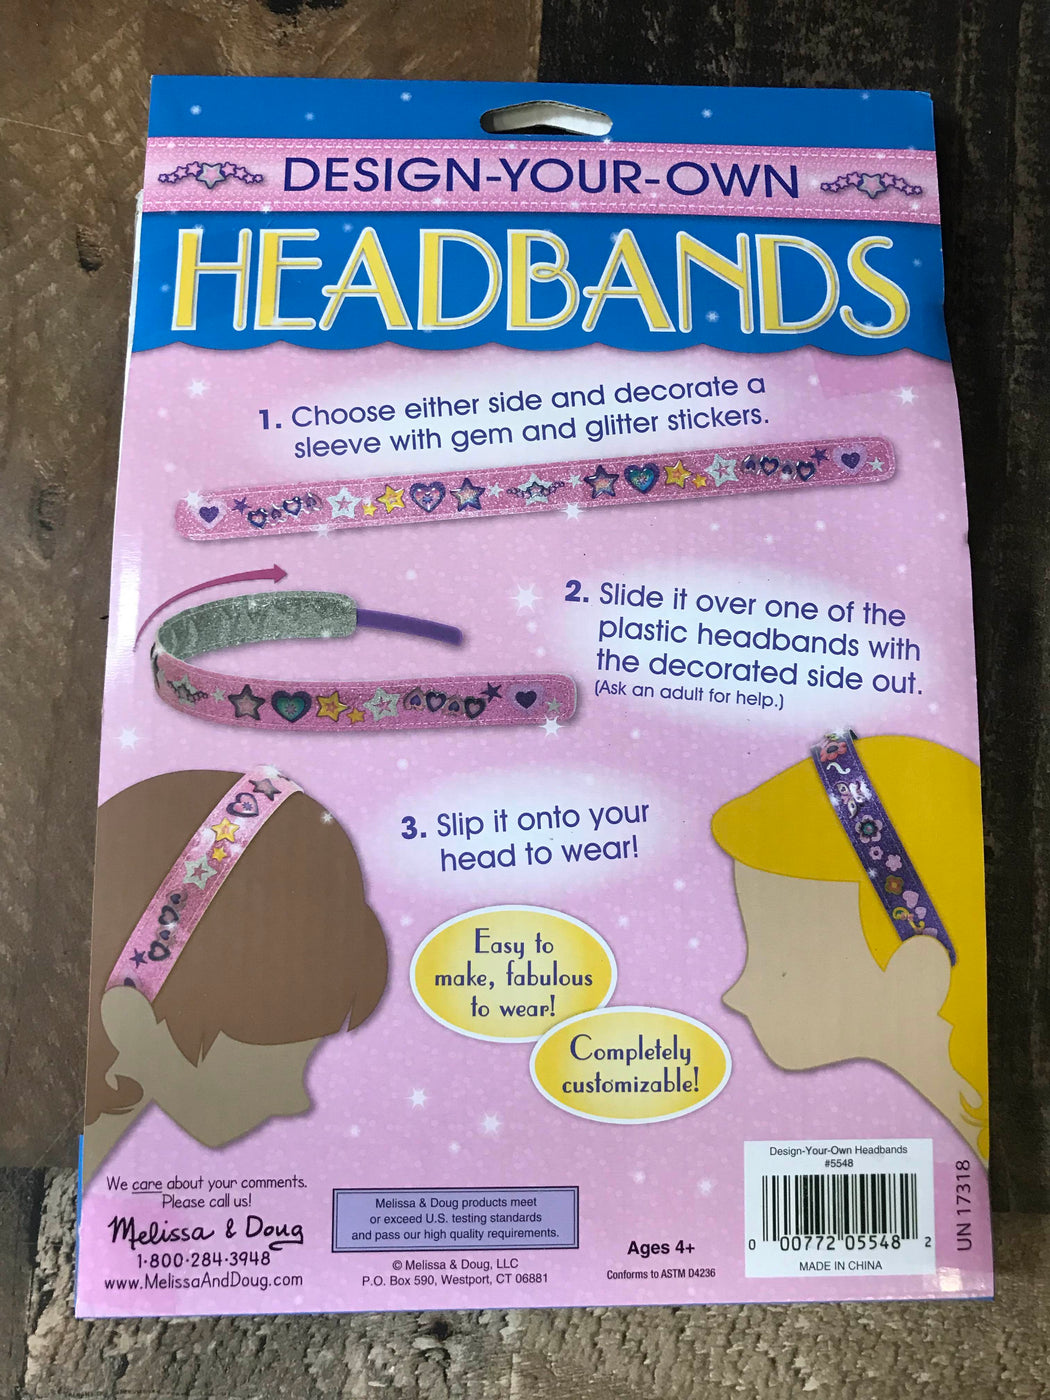 Melissa & Doug Design-Your-Own Headbands